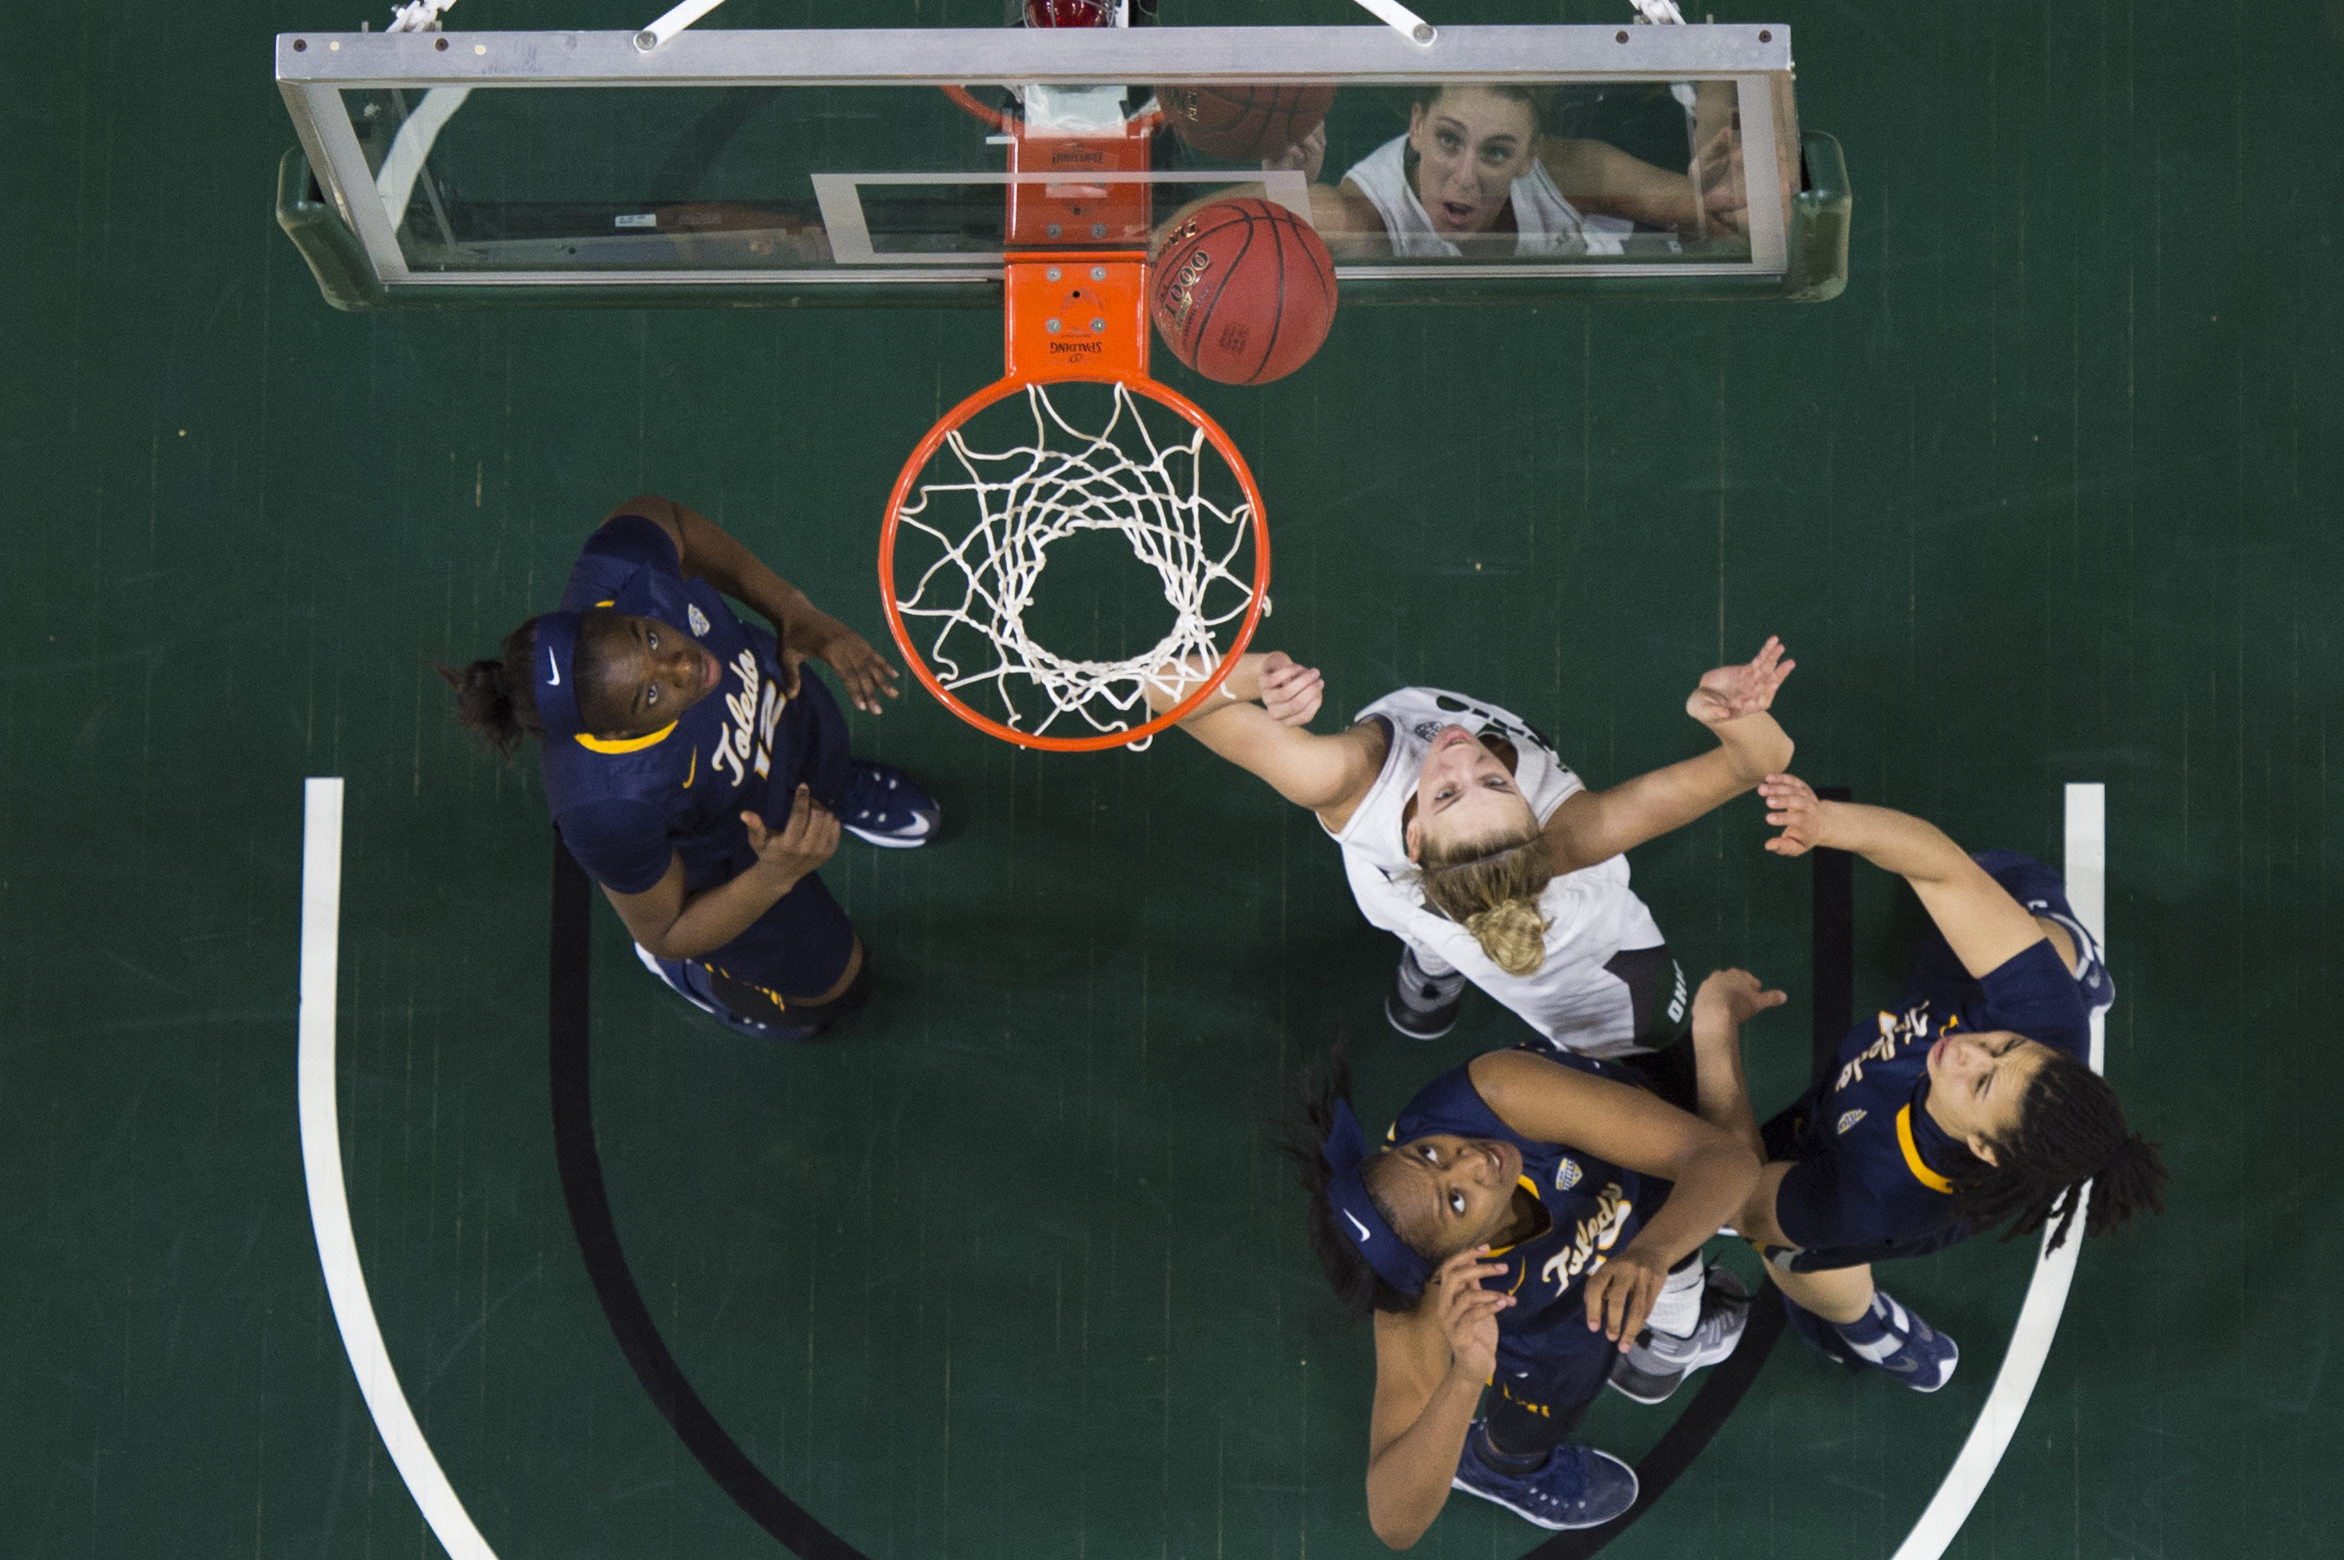 Ohio University forward Kelly Karlis shoots a shot against Toledo during their game on Feb. 2, 2017 at the Convocation Center in Athens, Ohio.